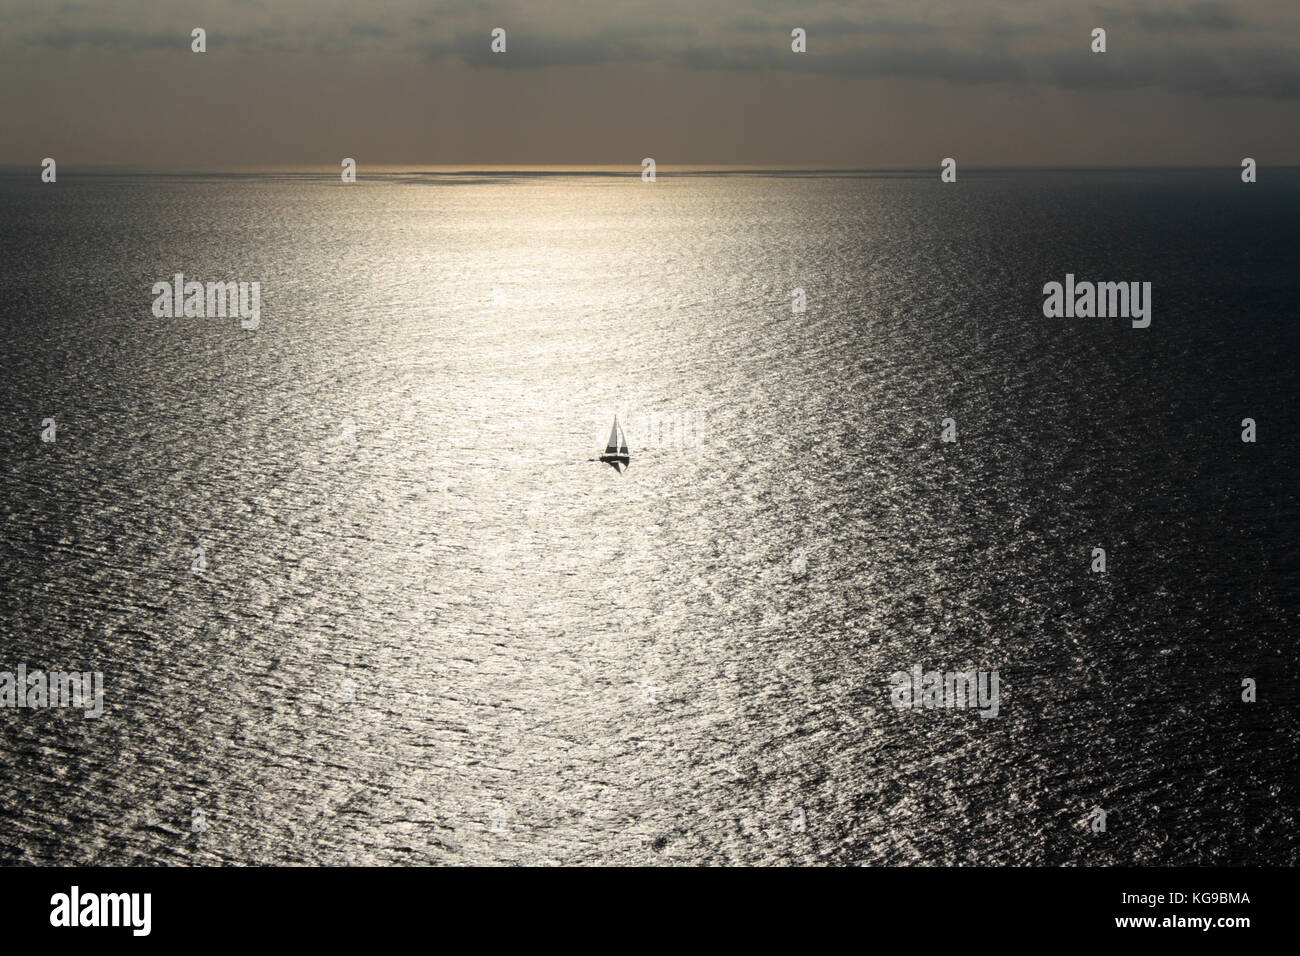 Solitary sailing boat or yacht caught in the sun's reflections on a wide expanse of sea - Stock Image